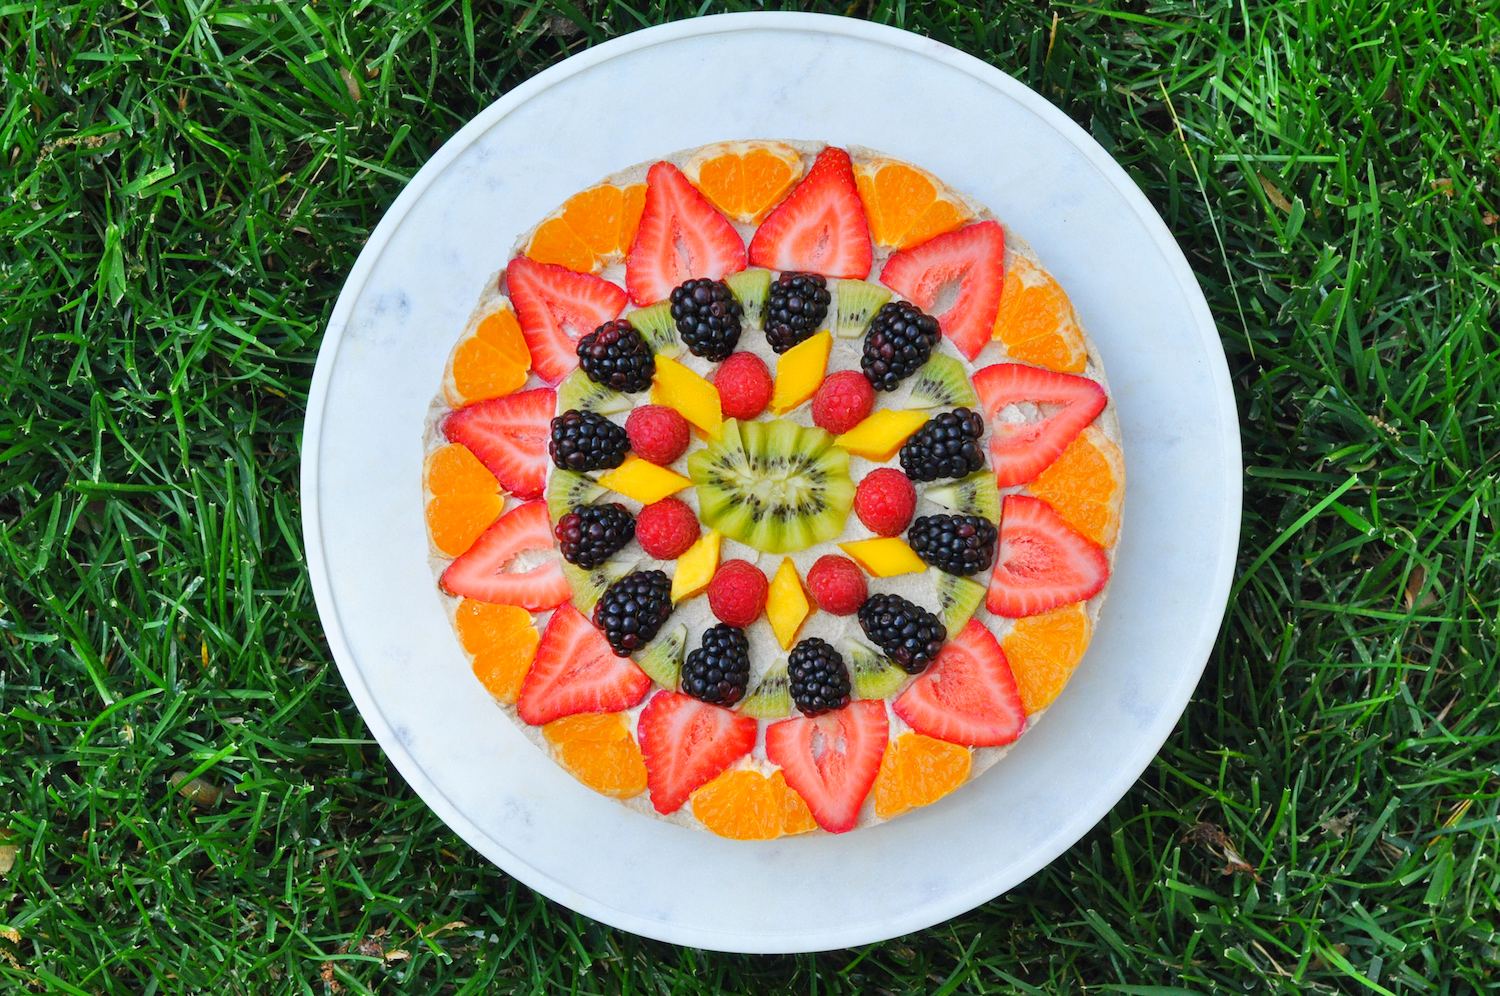 Erin Stanczyk | Lifestyle Design | eat.move.rest. | RAW VEGAN RAINBOW GLOW FRUIT PIZZA: DESSERT UPGRADE 2.0